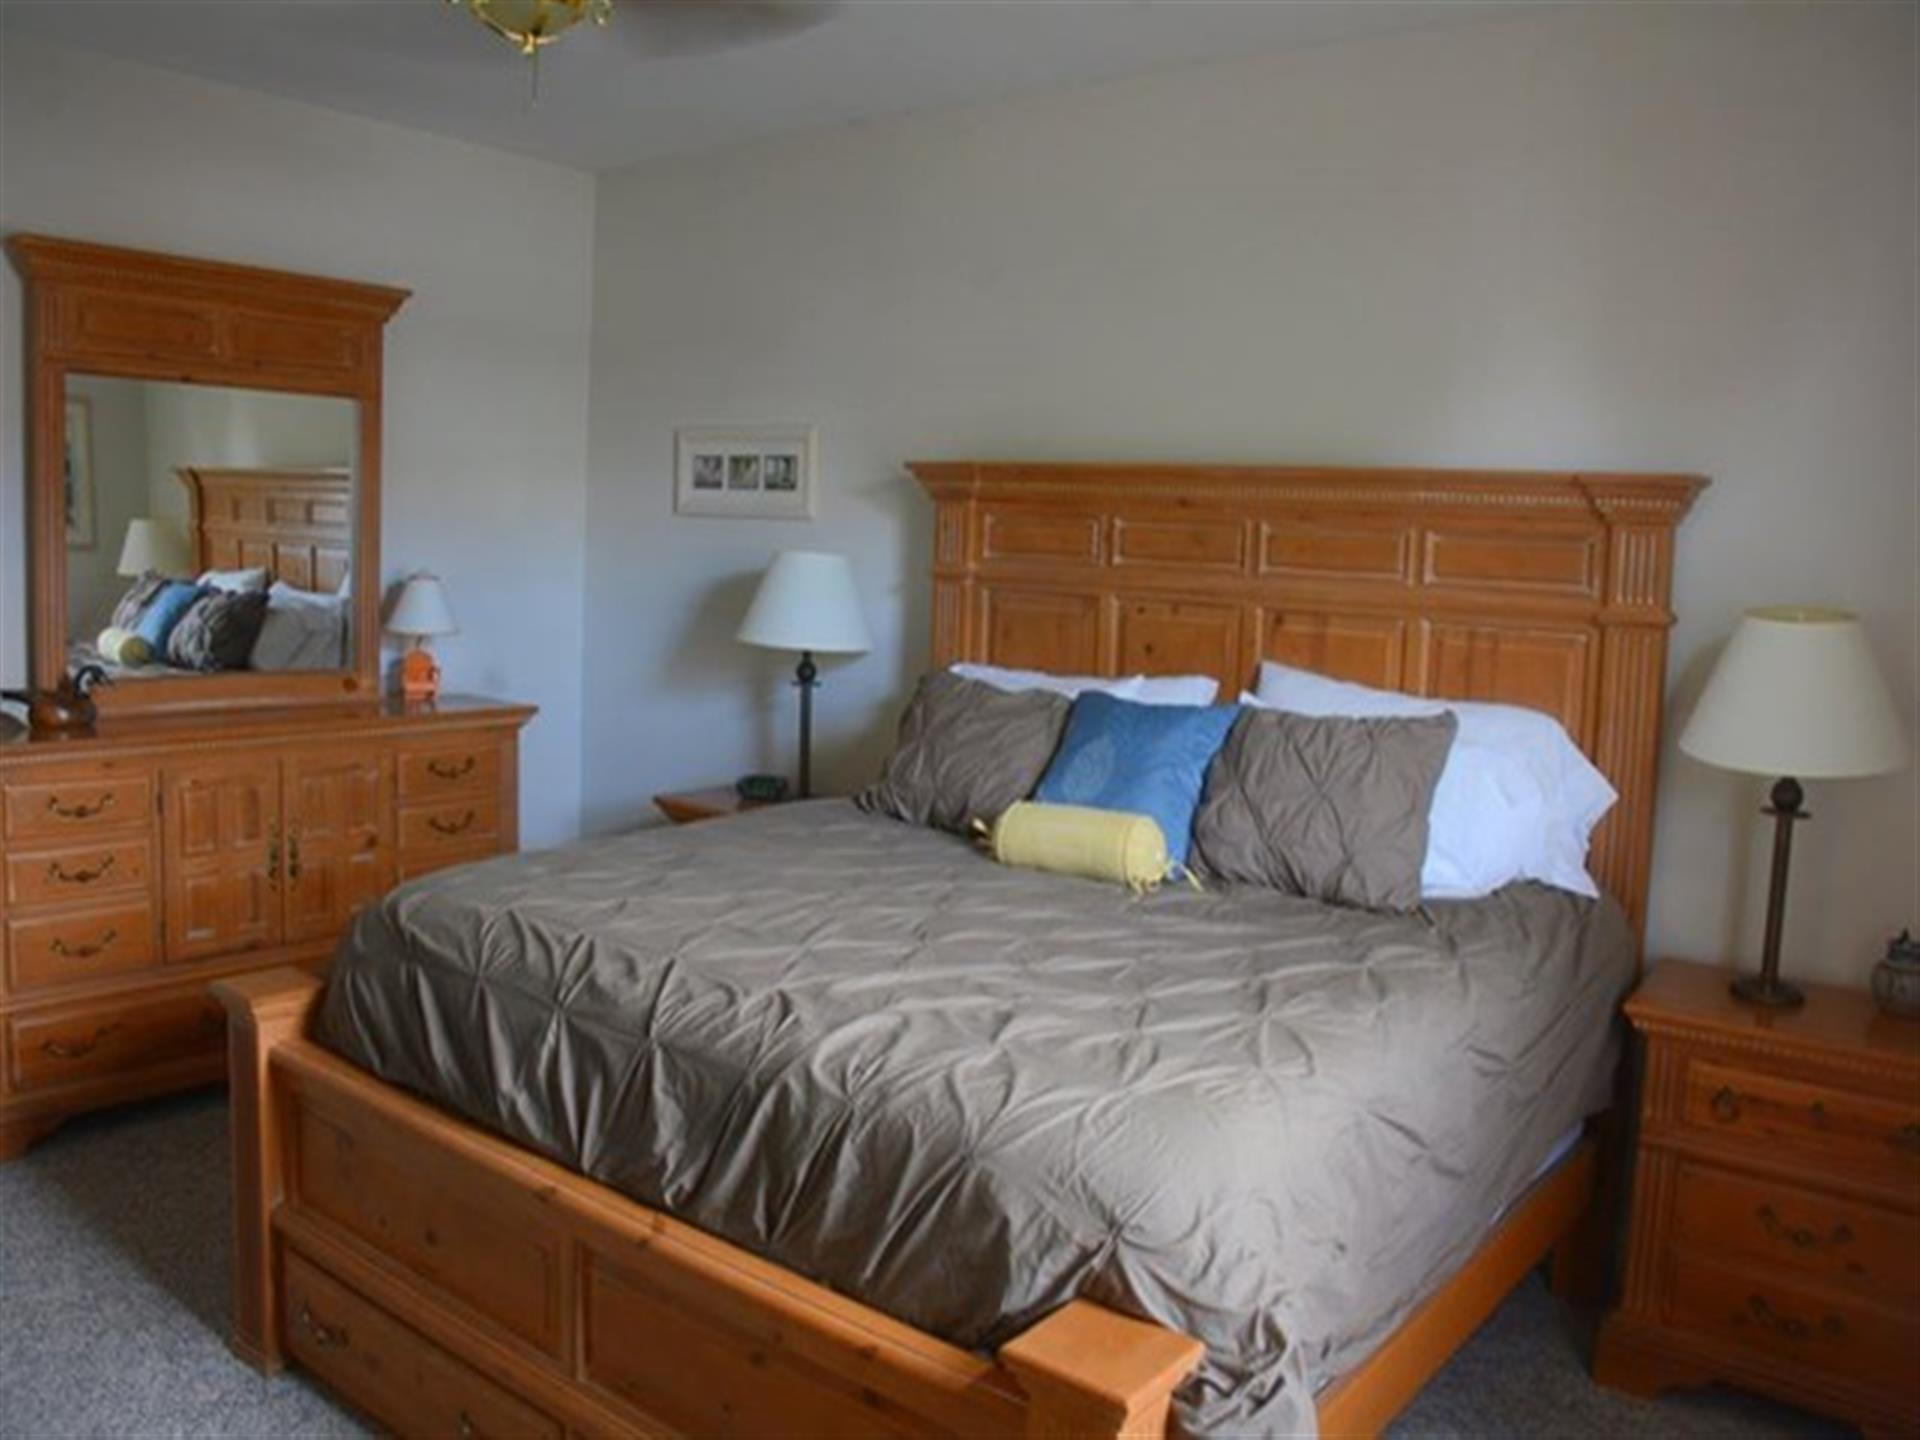 Suite 2. Light wood furniture and a king-size bed.